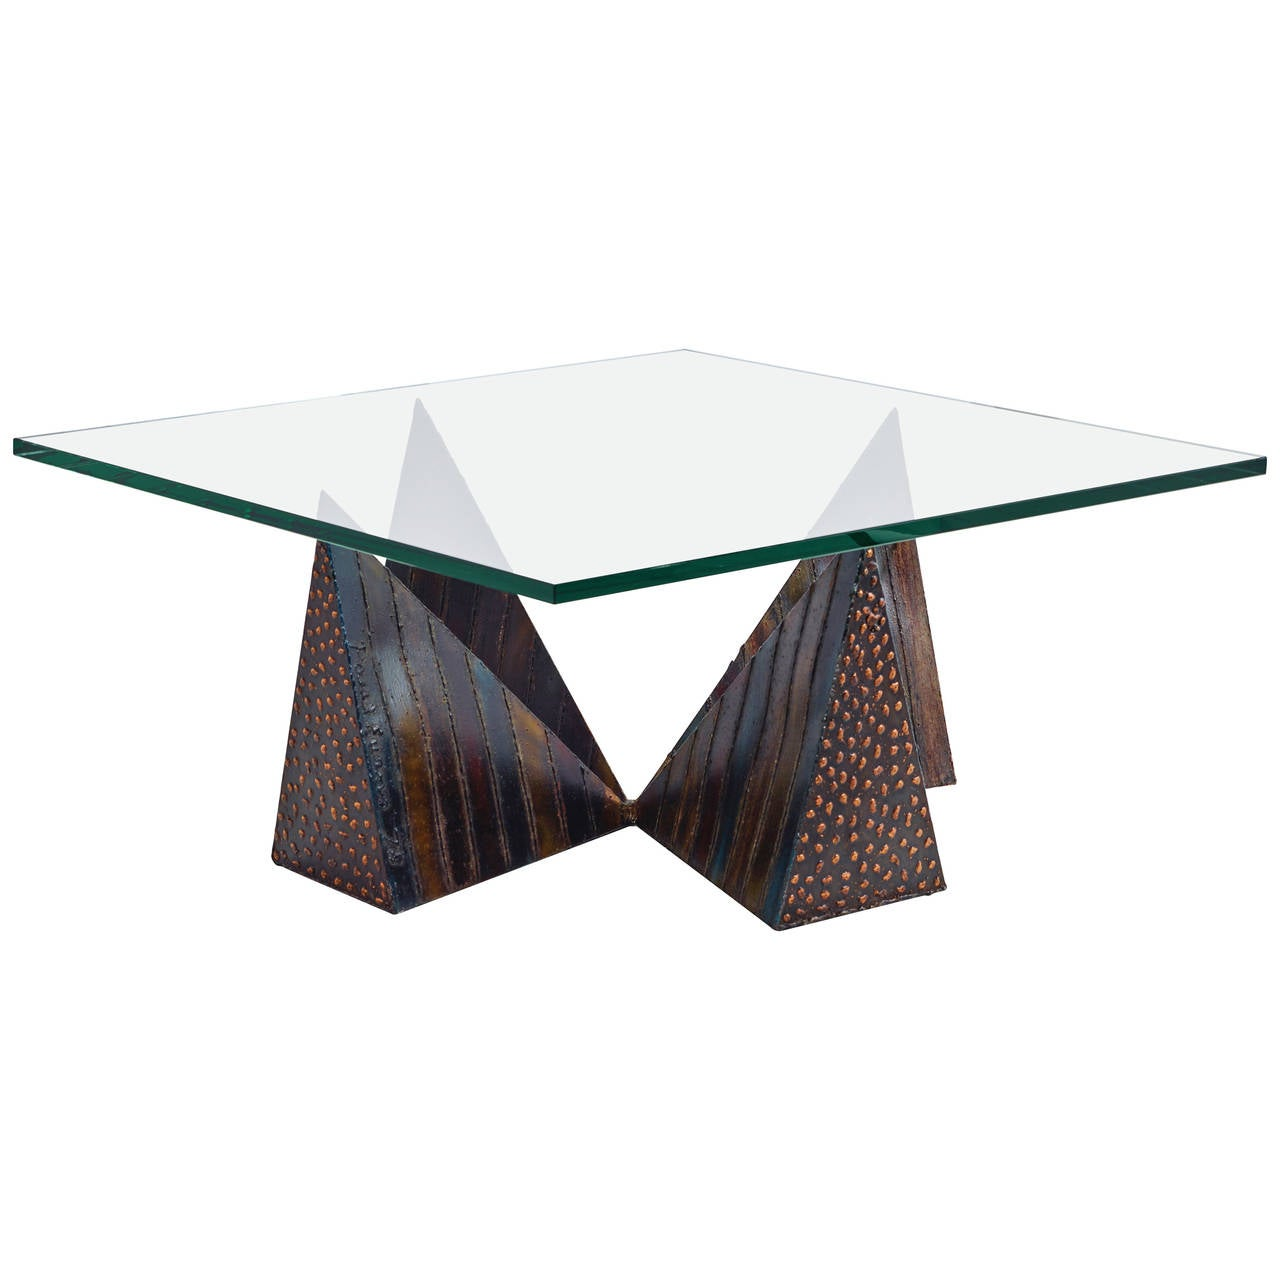 Paul Evans Pyramid Cocktail or Coffee Table, PE 14 - 42, 1973 For Sale